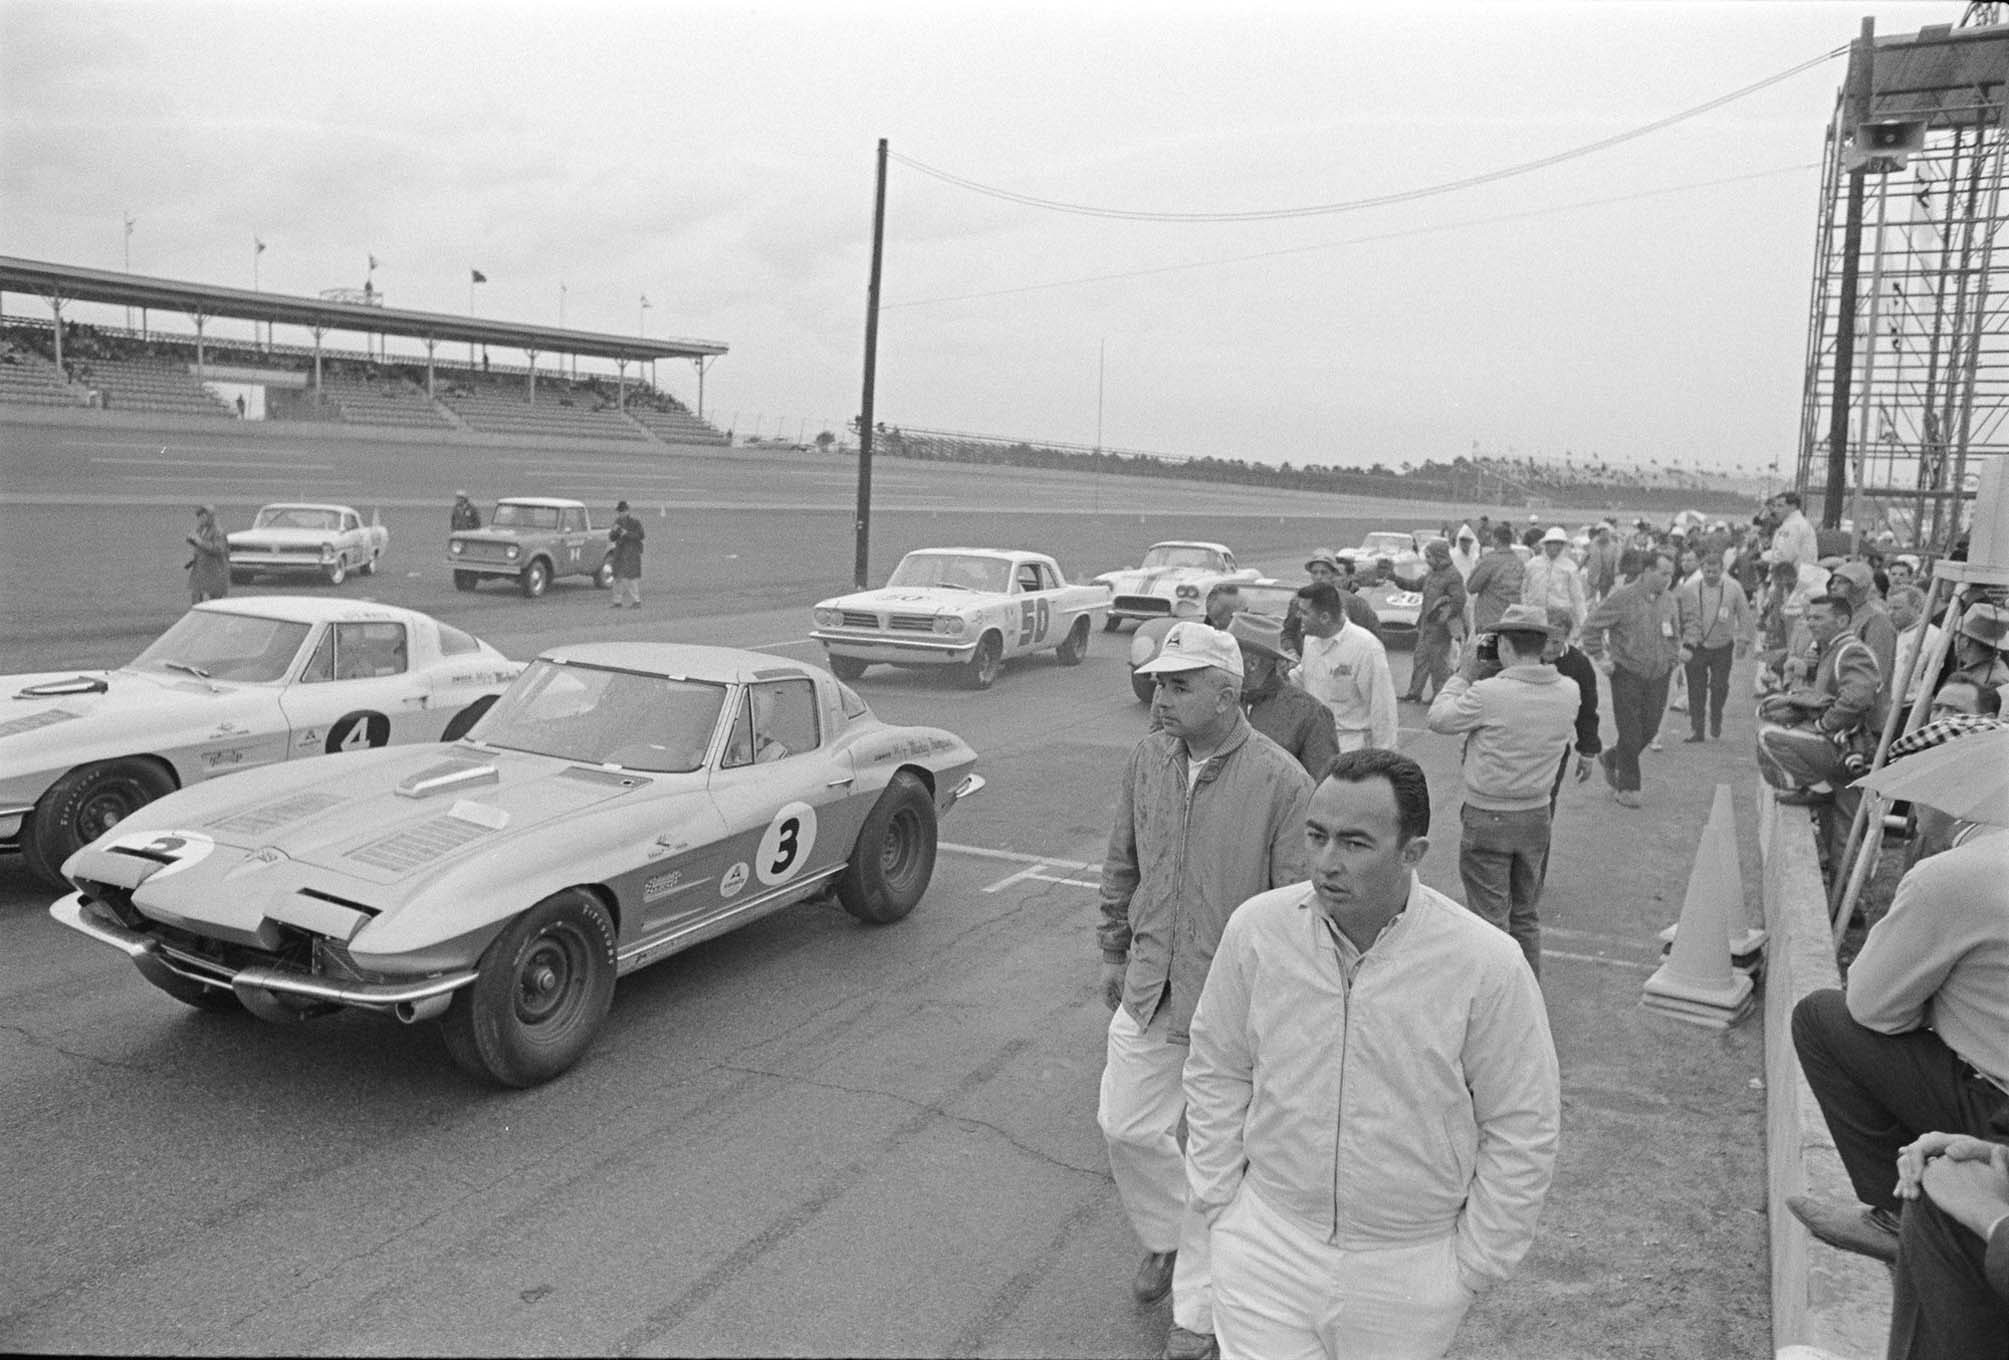 Rex White began the race in the white No. 4 car, and Krause replaced Johnson in the silver No. 3 car; notice the tape over Johnson's name on the No. 3 car.